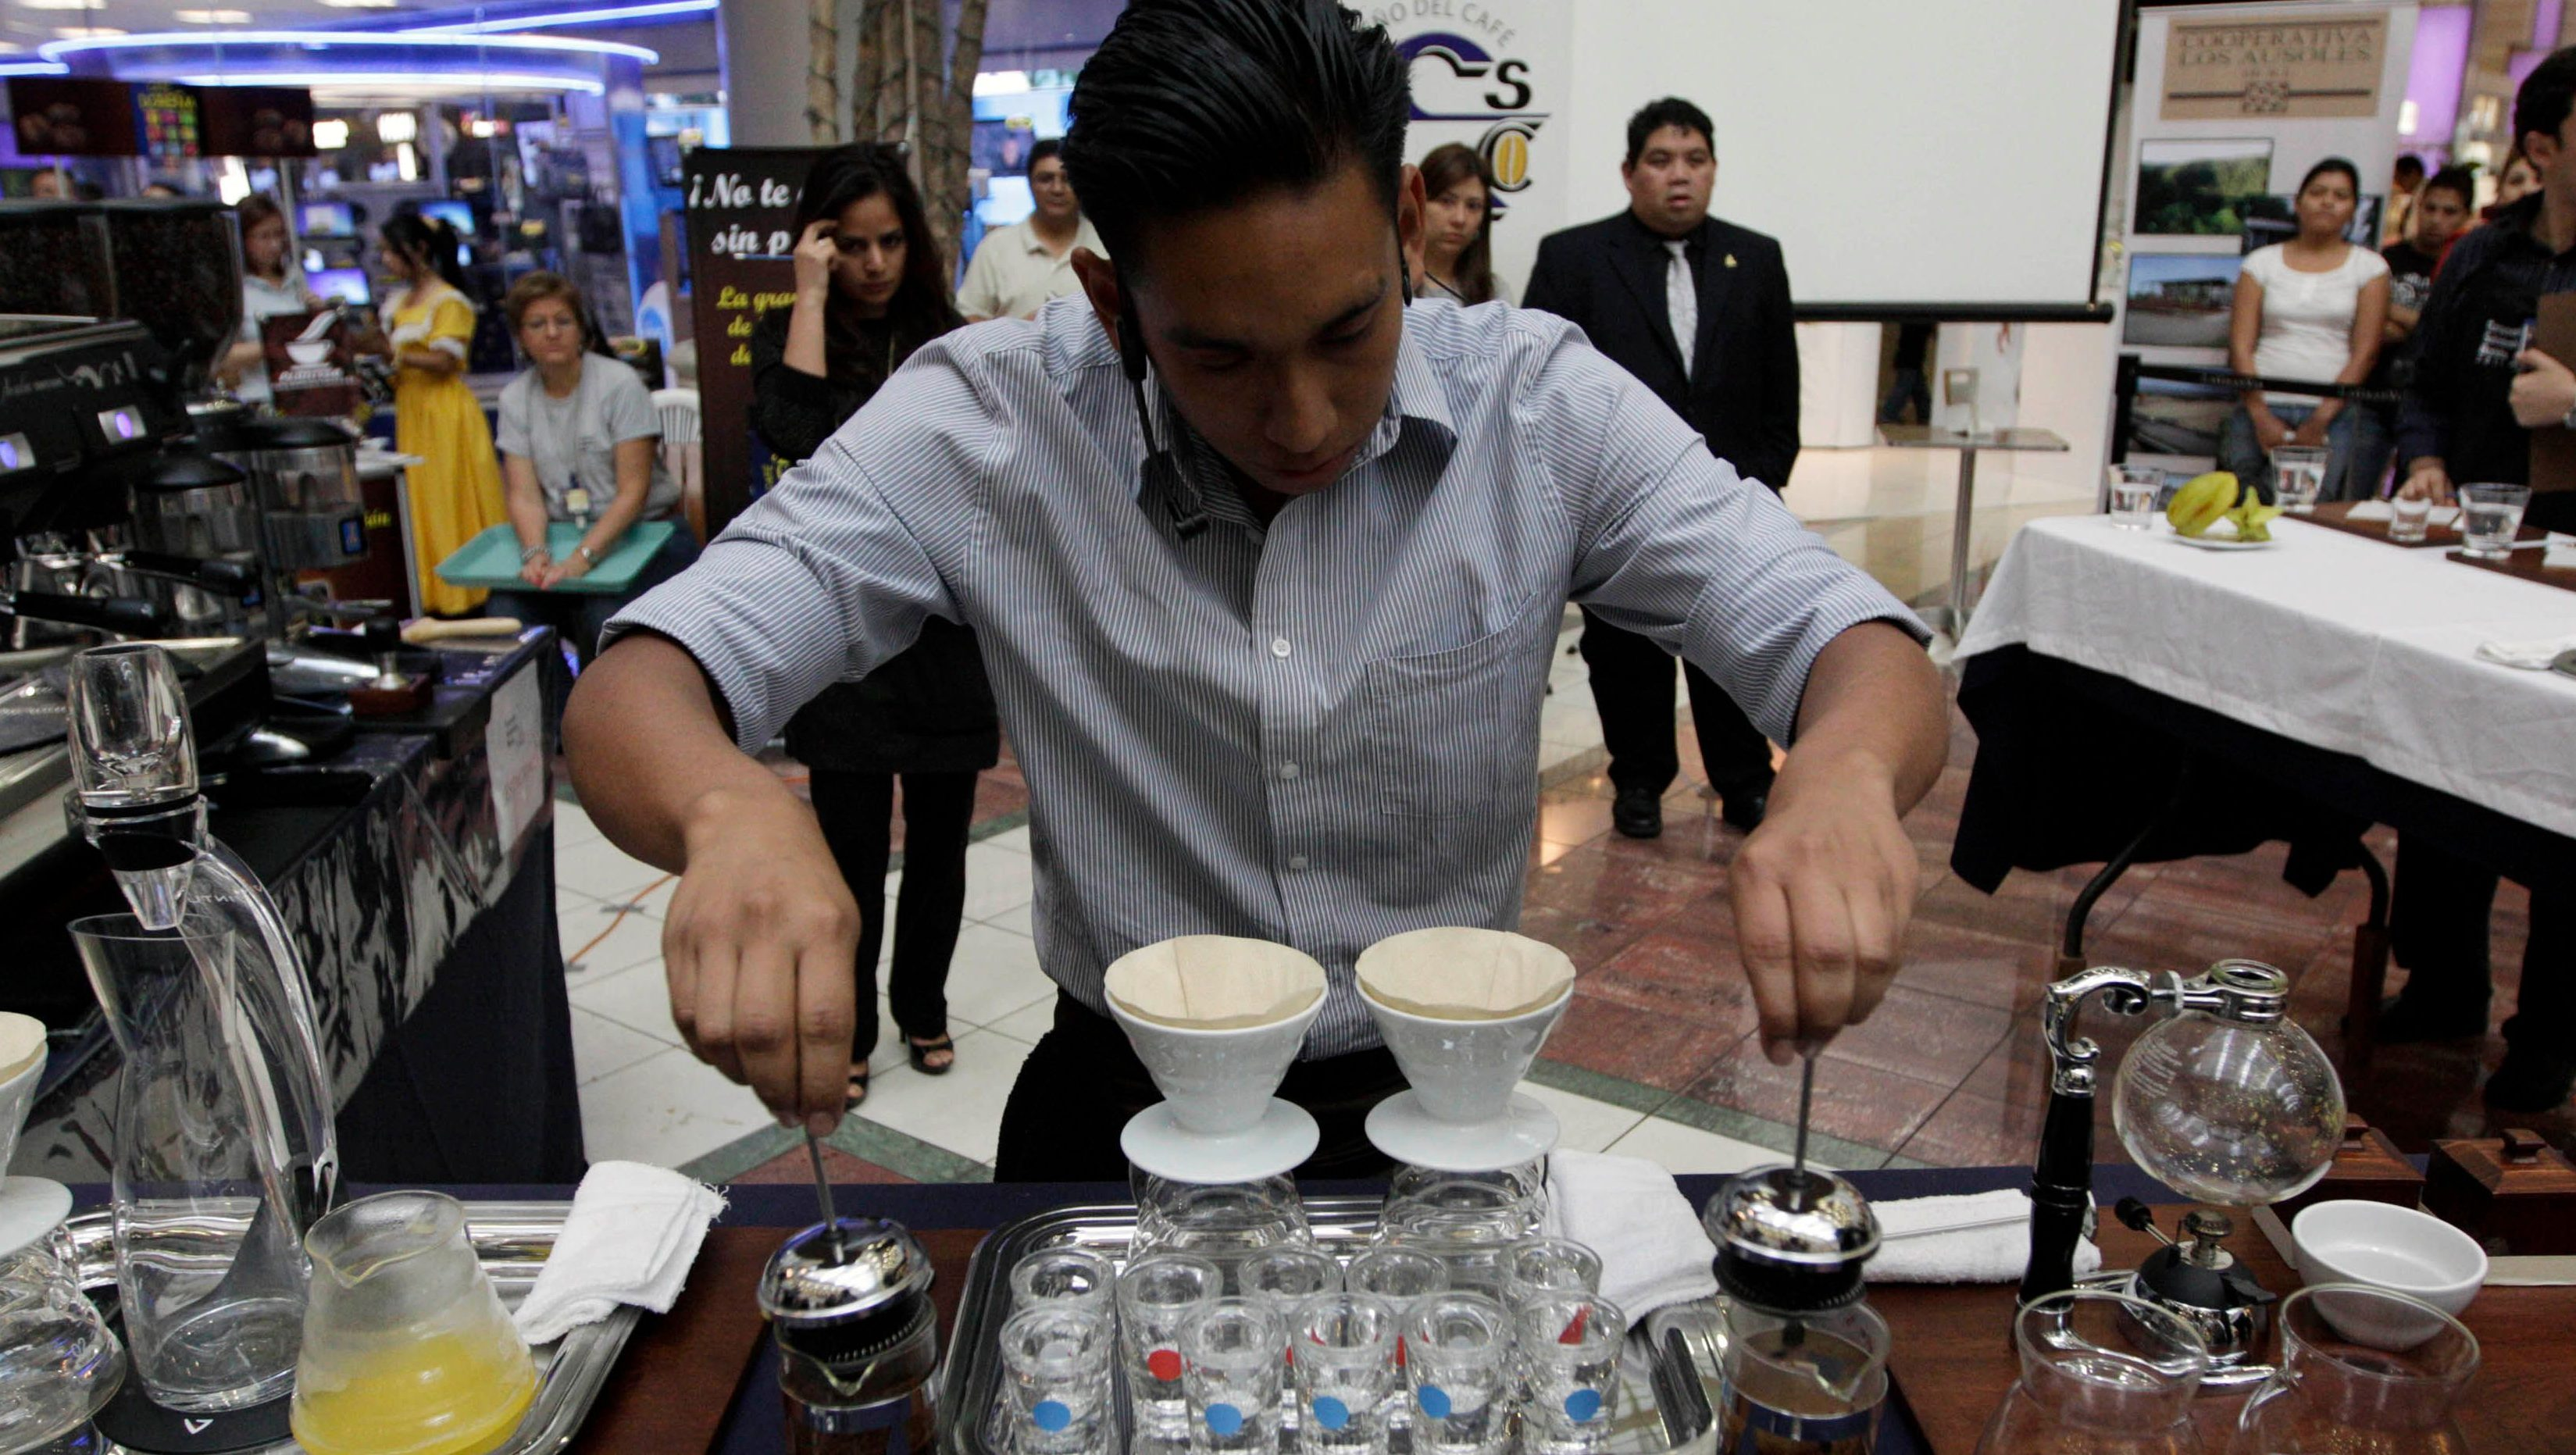 A competitor prepares coffee during the 4th El Salvador National Barista Championship at a mall in San Salvador February 19, 2011. The winner will represent El Salvador in the 2011 World Barista Championship, which will be held in June in Bogota, Colombia. REUTERS/Oscar Rivera (EL SALVADOR - Tags: FOOD SOCIETY) - GM1E72K0UQ801